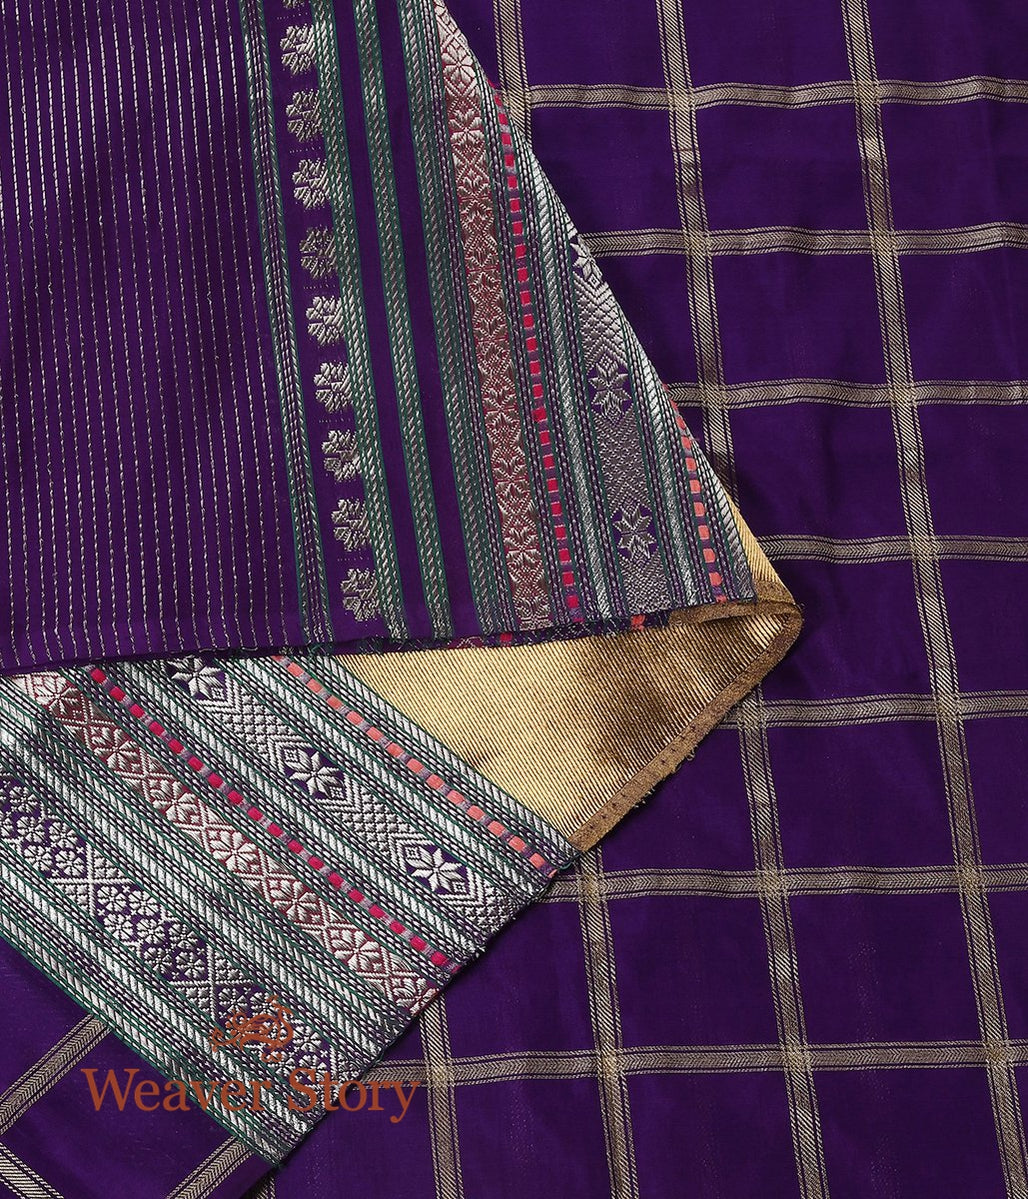 Handwoven Purple Banarasi Dupatta with Checks and Zari Pallu